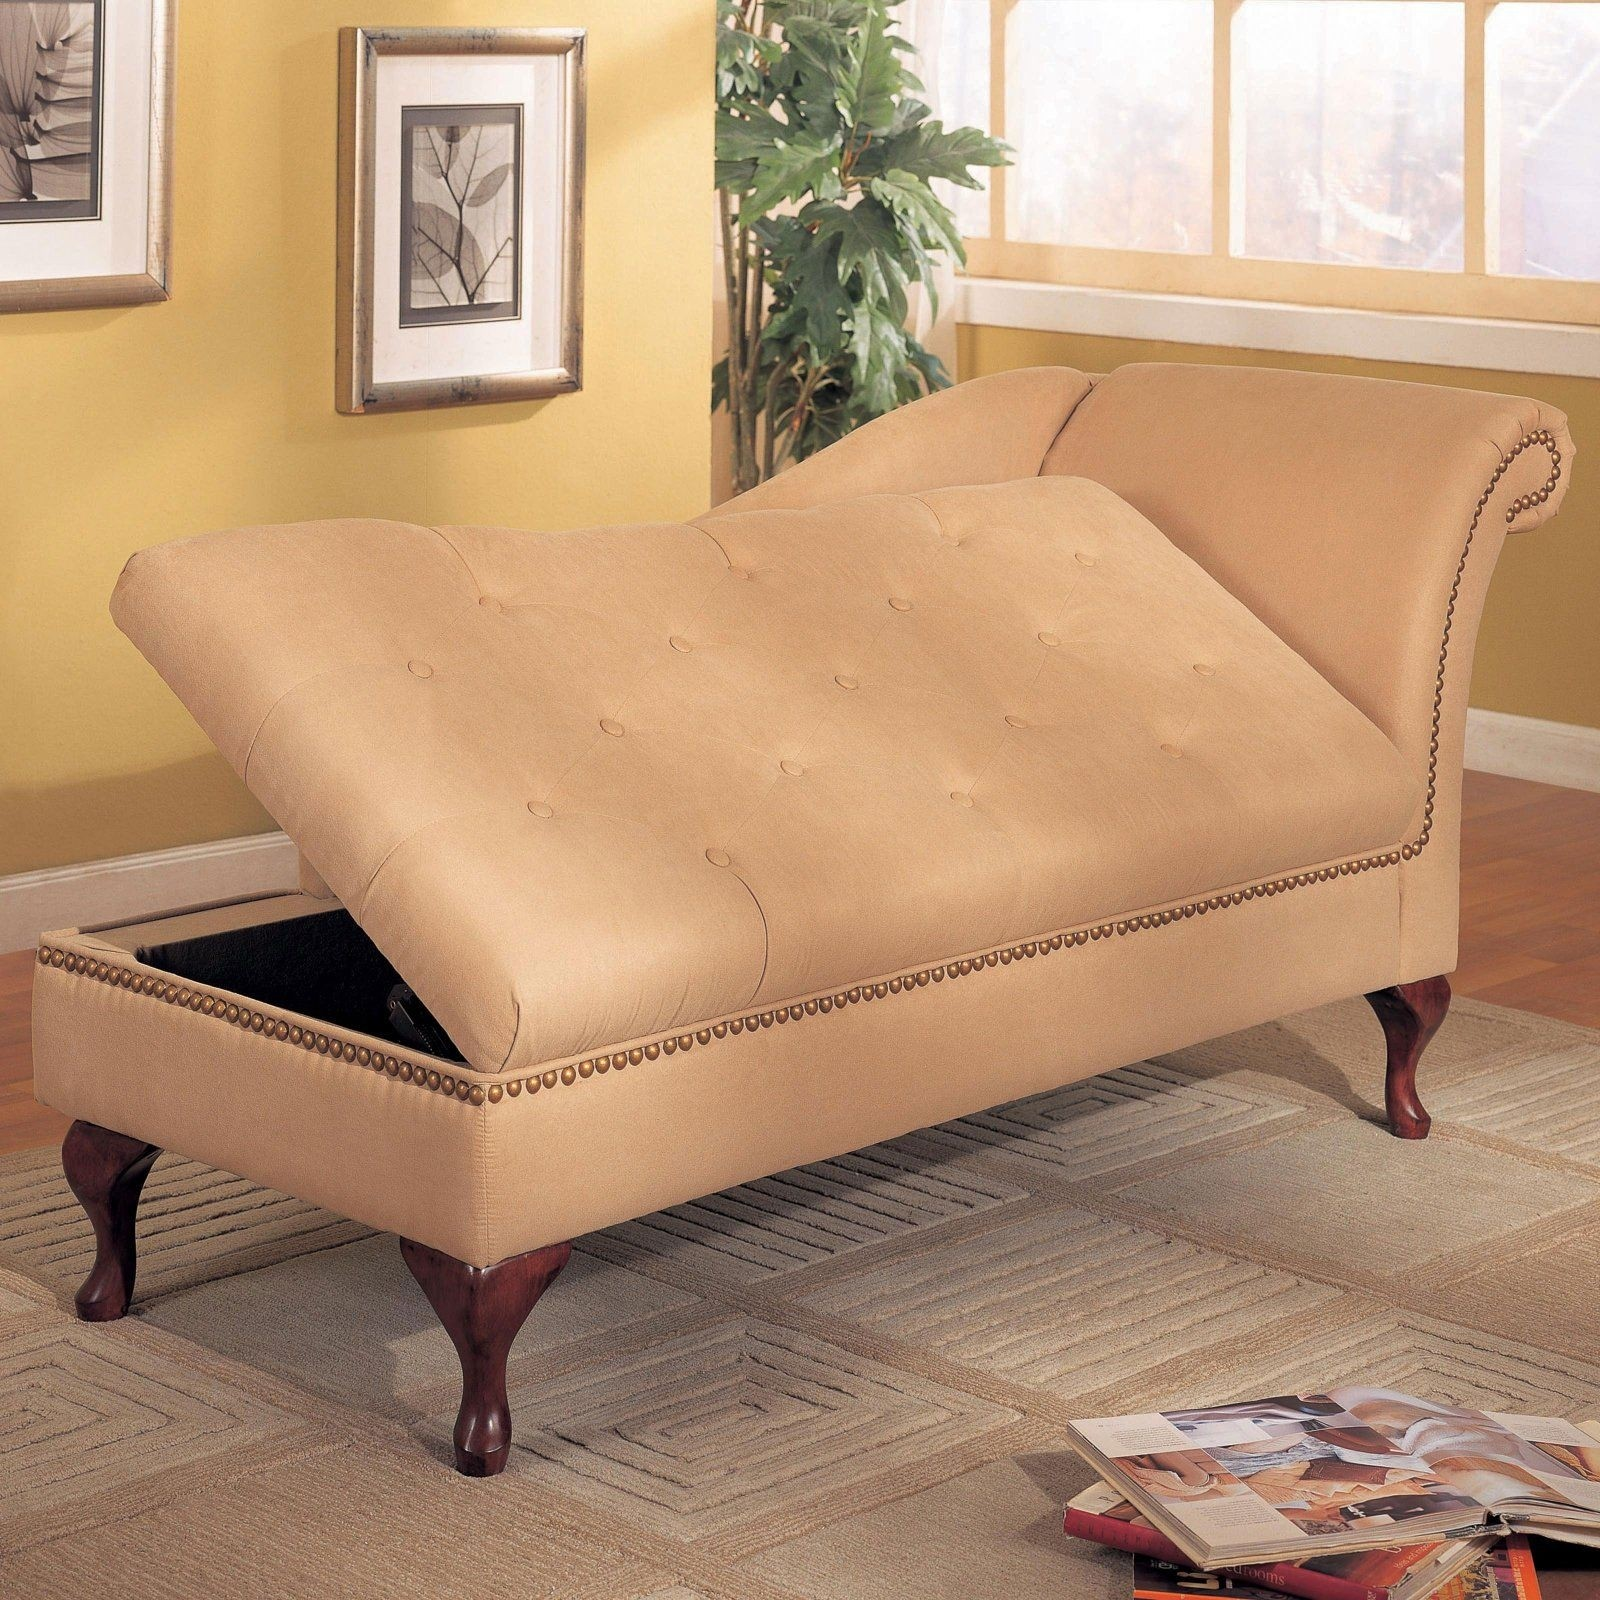 Genial Storage Chaise Lounge 1